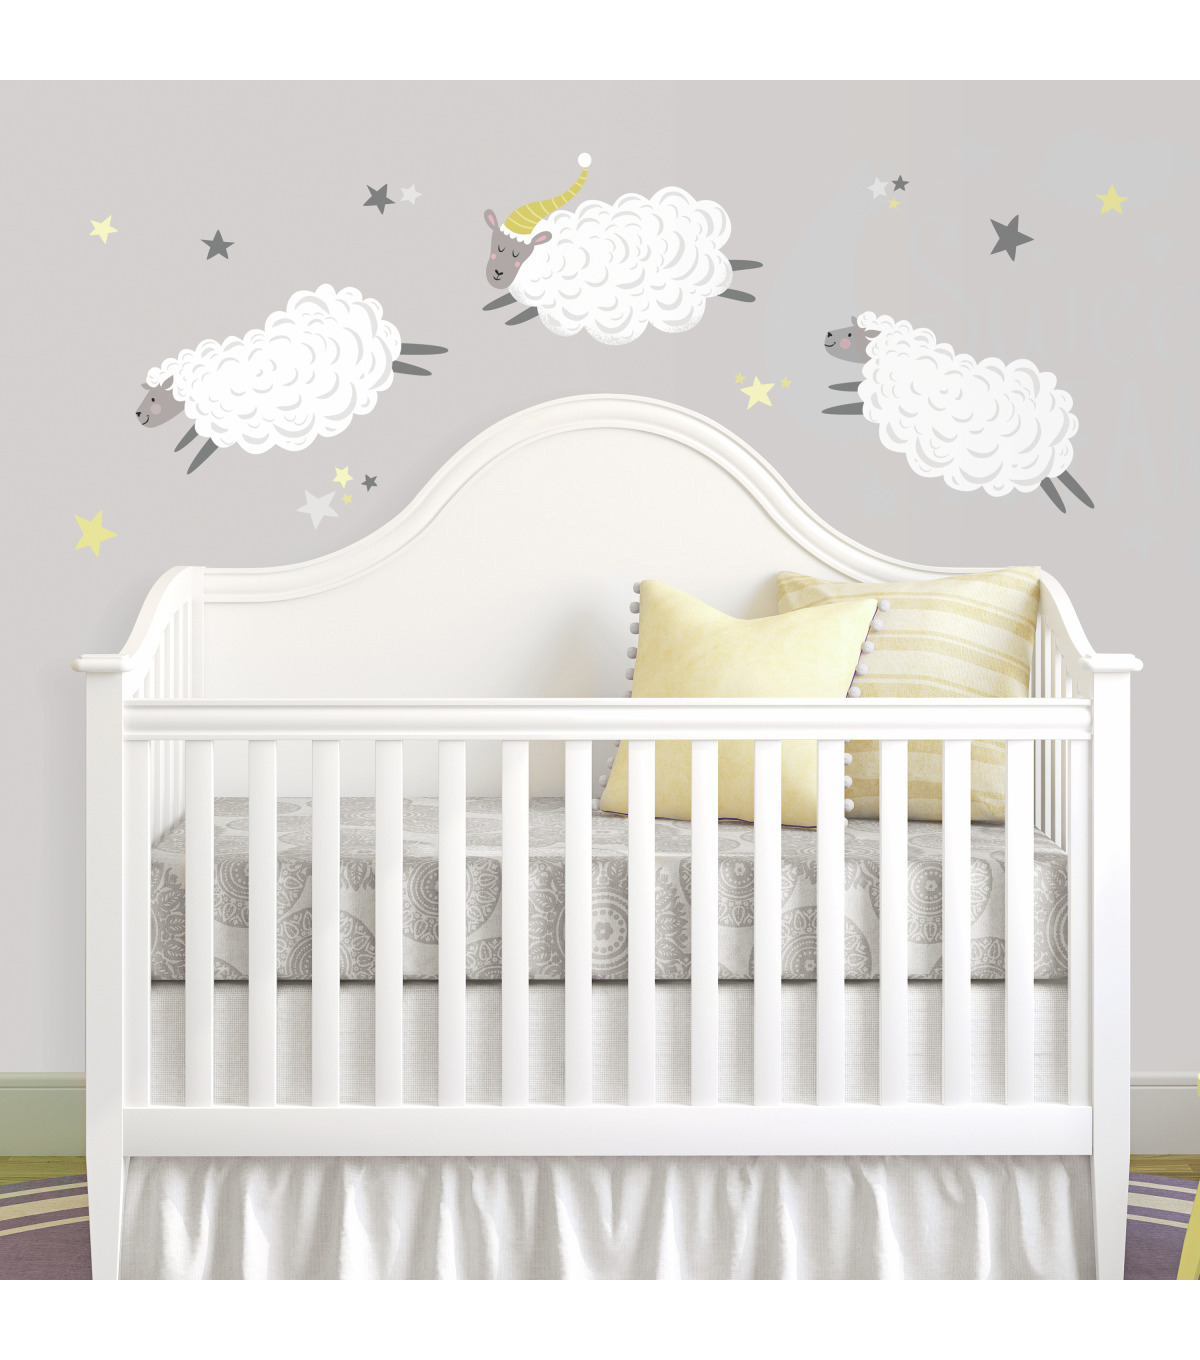 York Wallcoverings Wall Decals-Counting Sheep